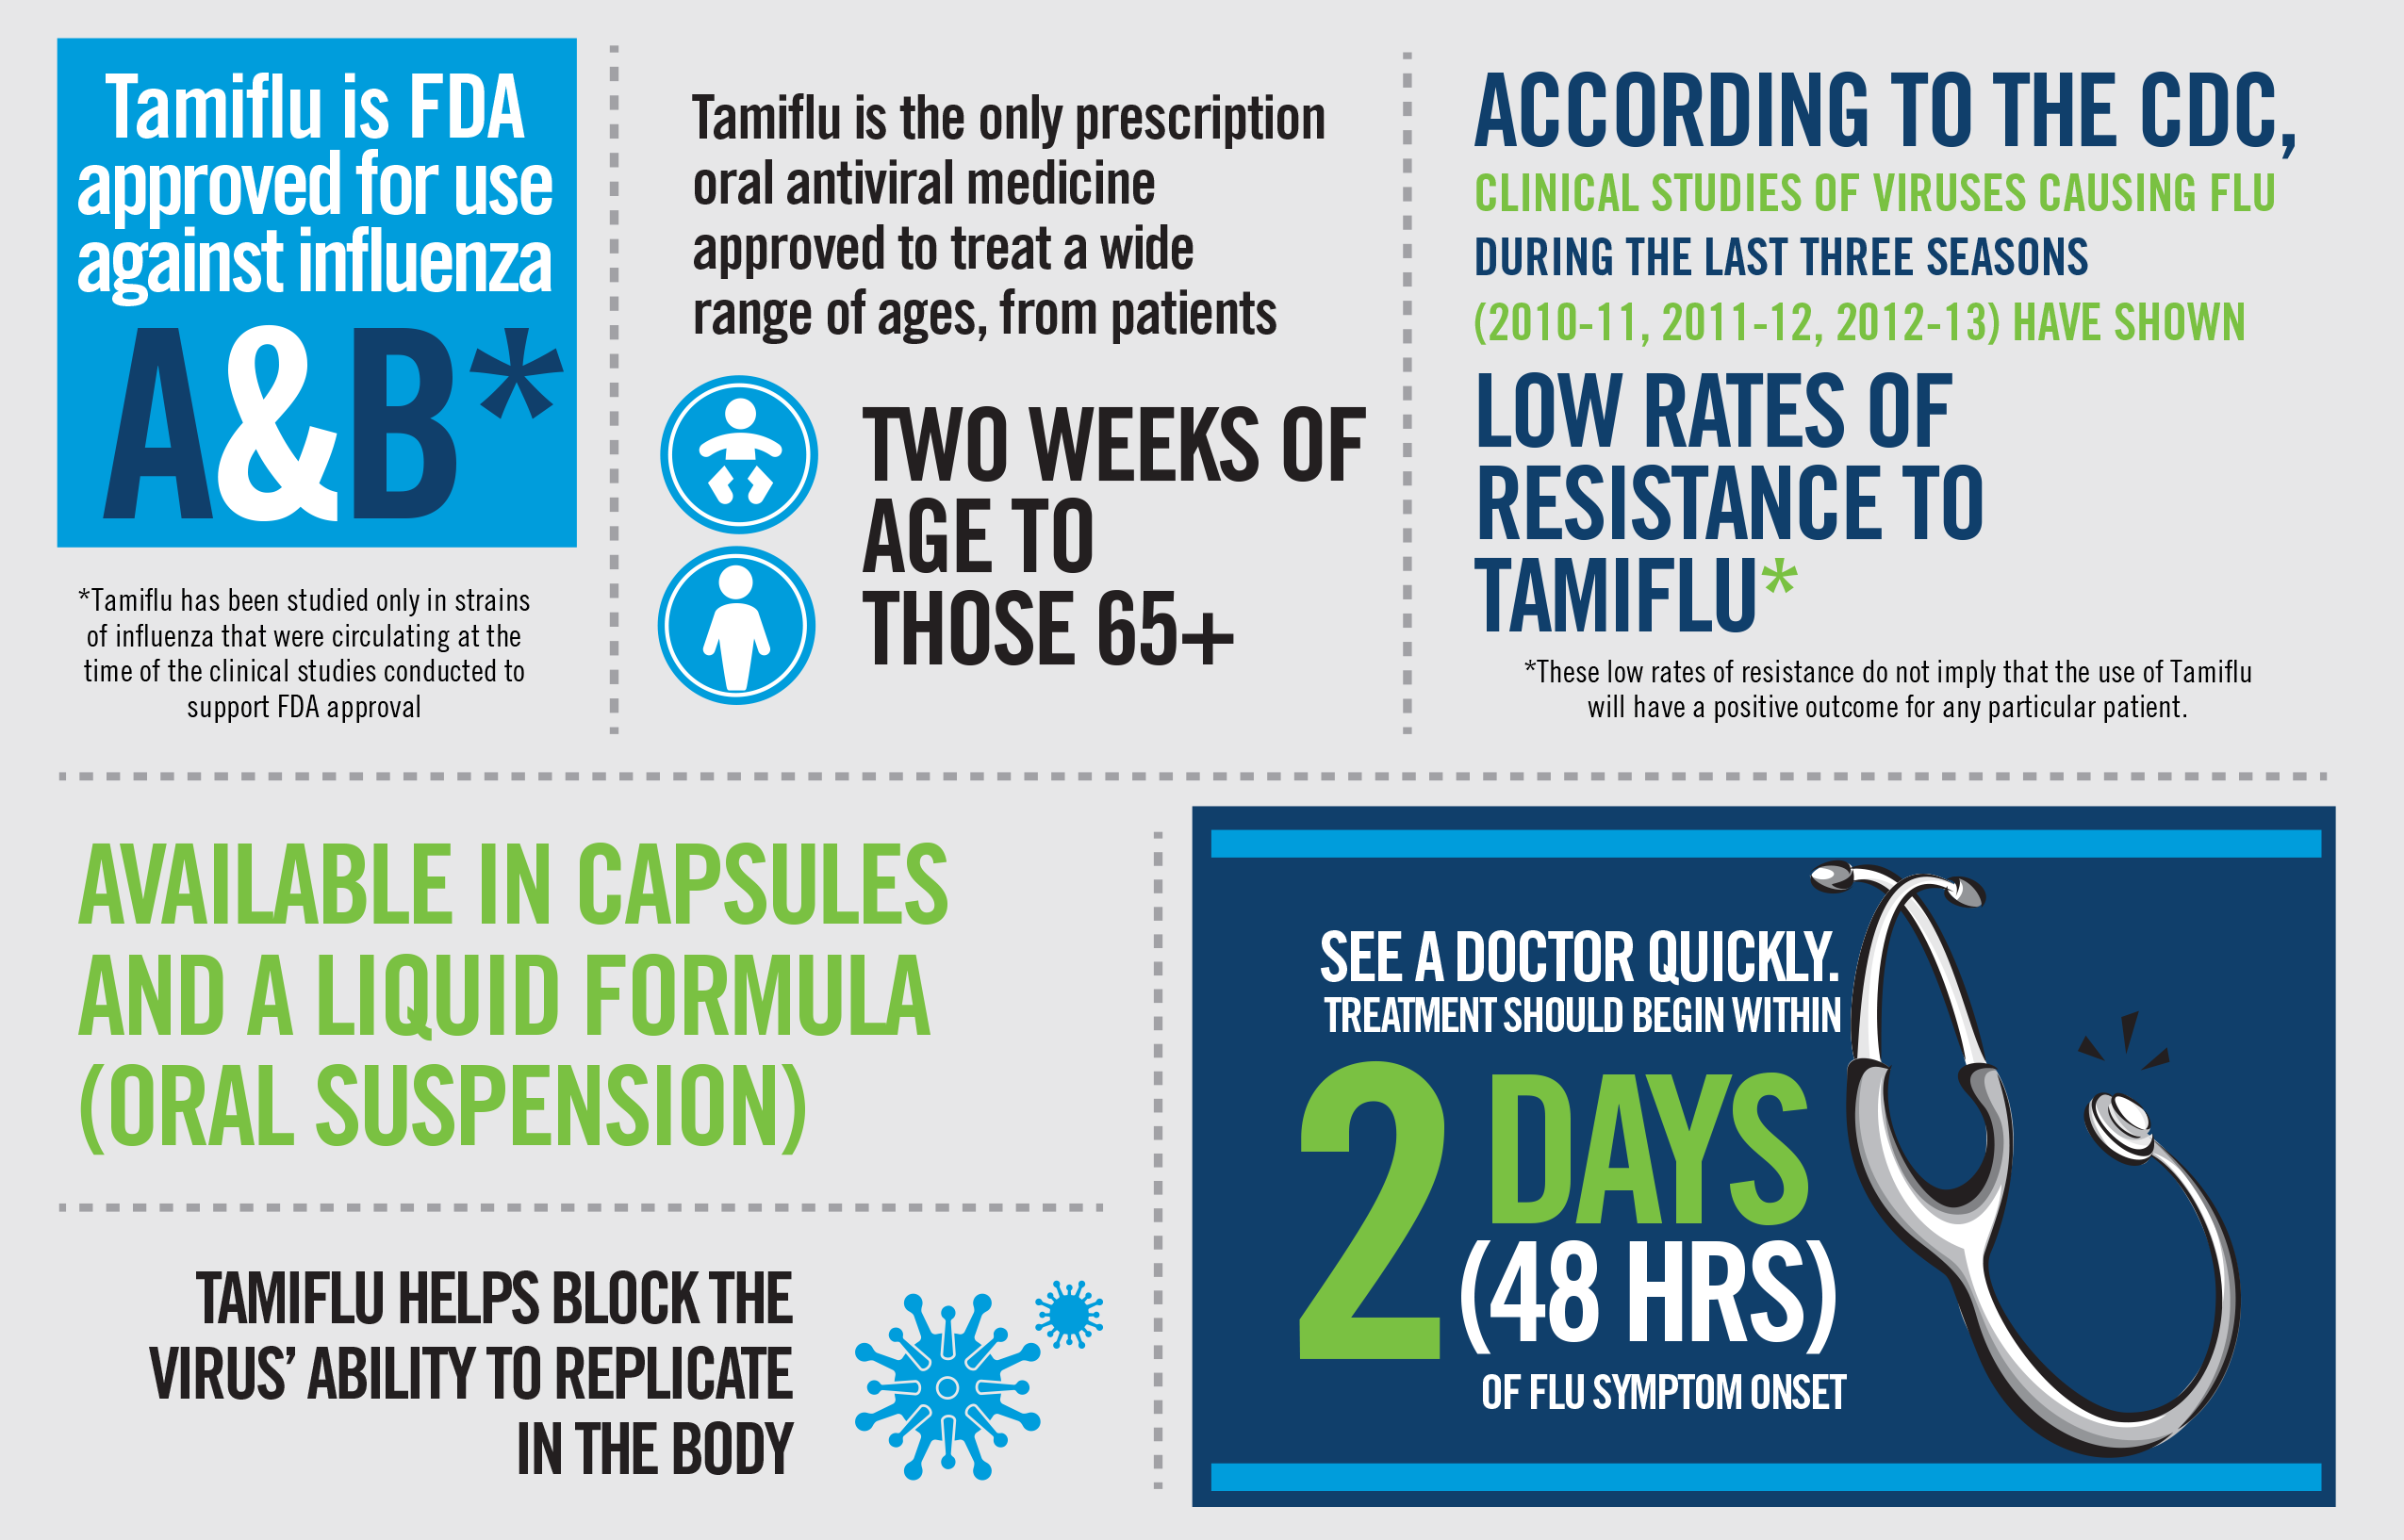 About Tamiflu